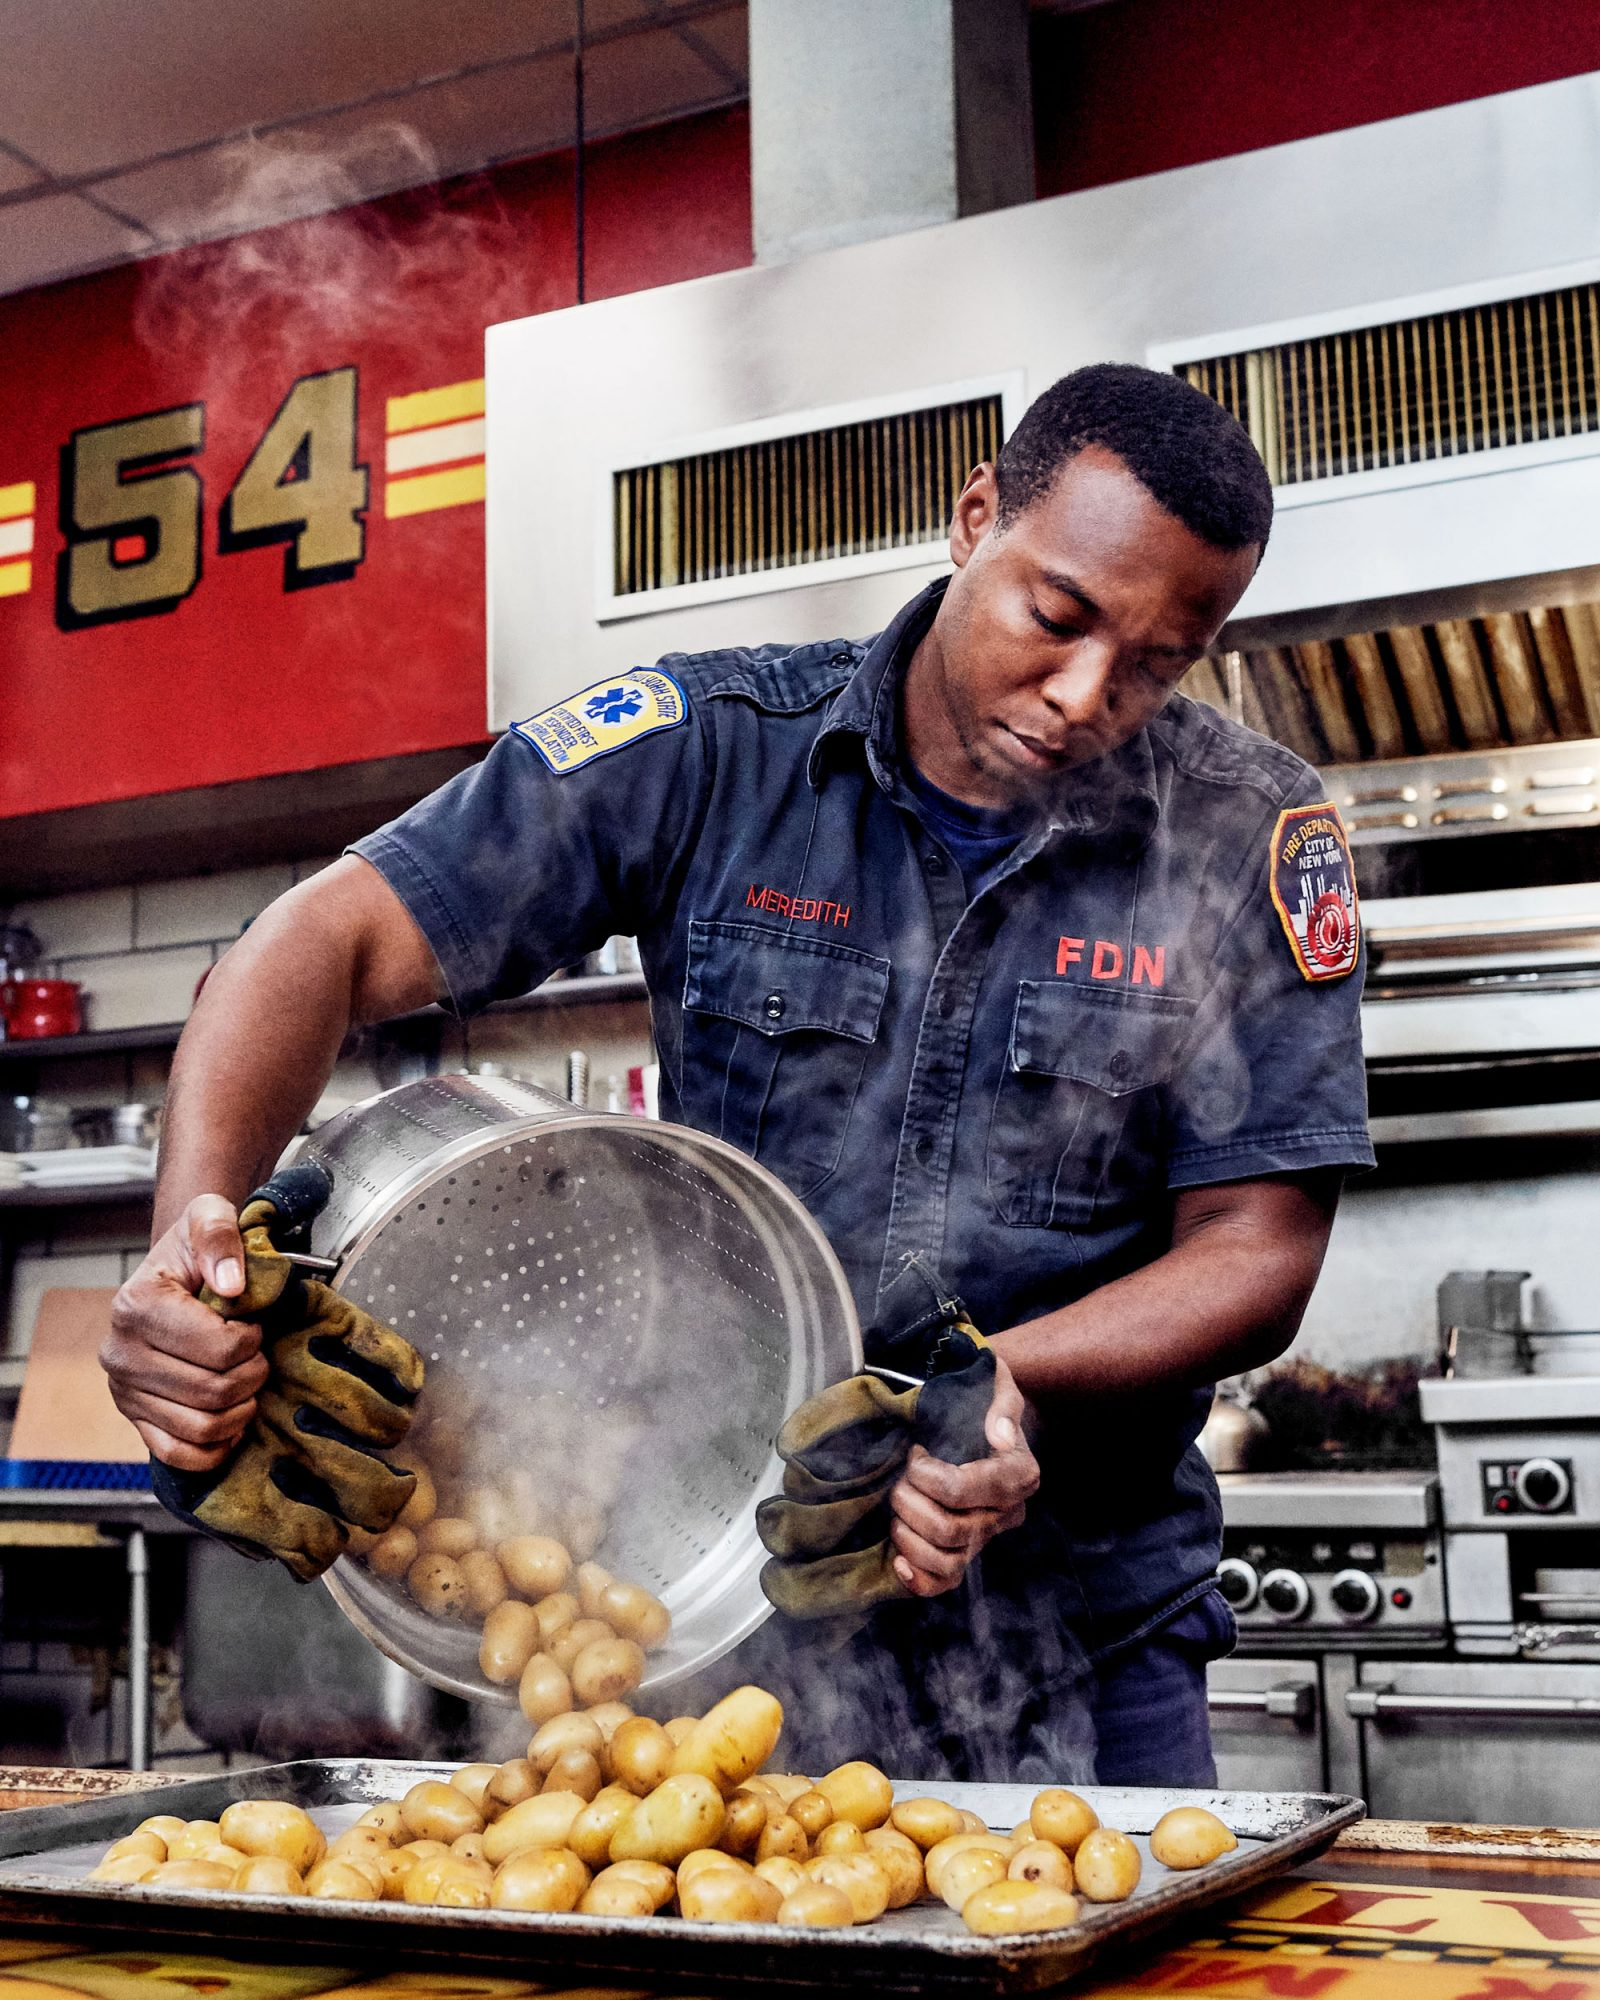 firefighter dumping baby potatoes onto tray